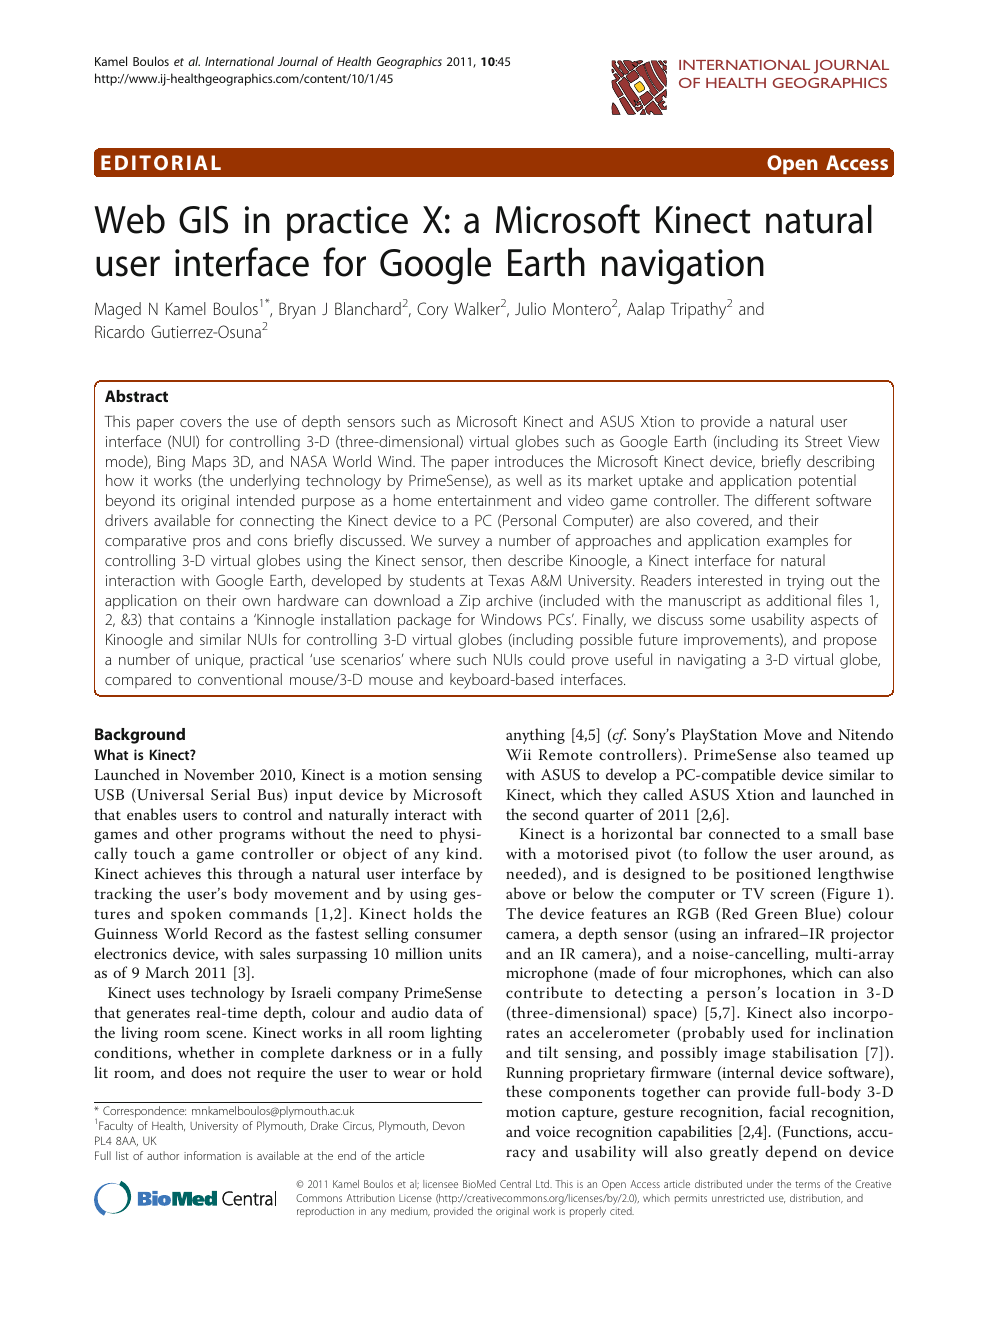 Web GIS in practice X: a Microsoft Kinect natural user